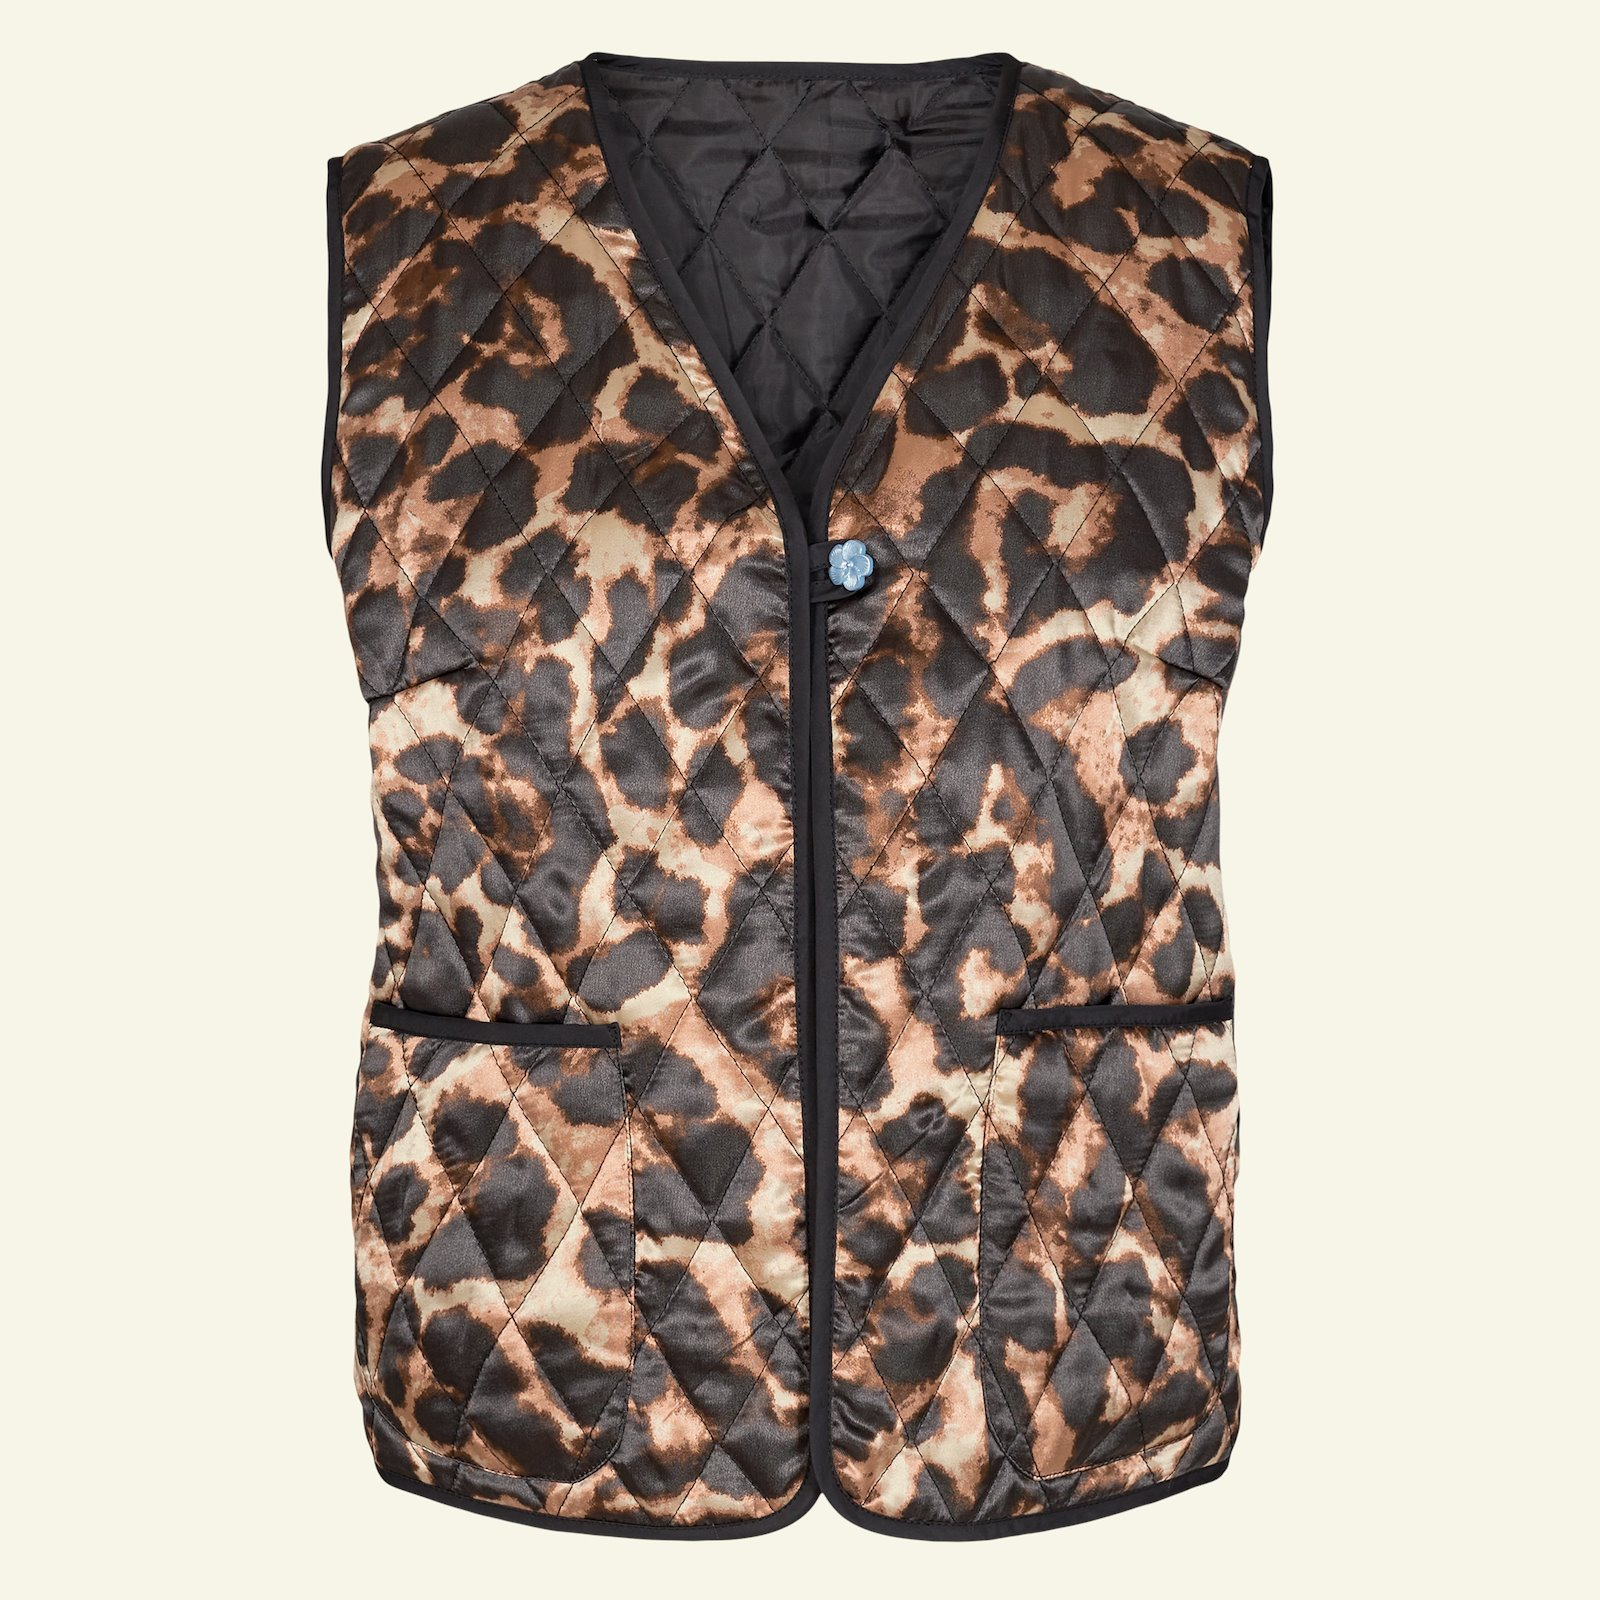 Quilted jacket and waistcoat, 42/14 p24047_920226_64080_sskit